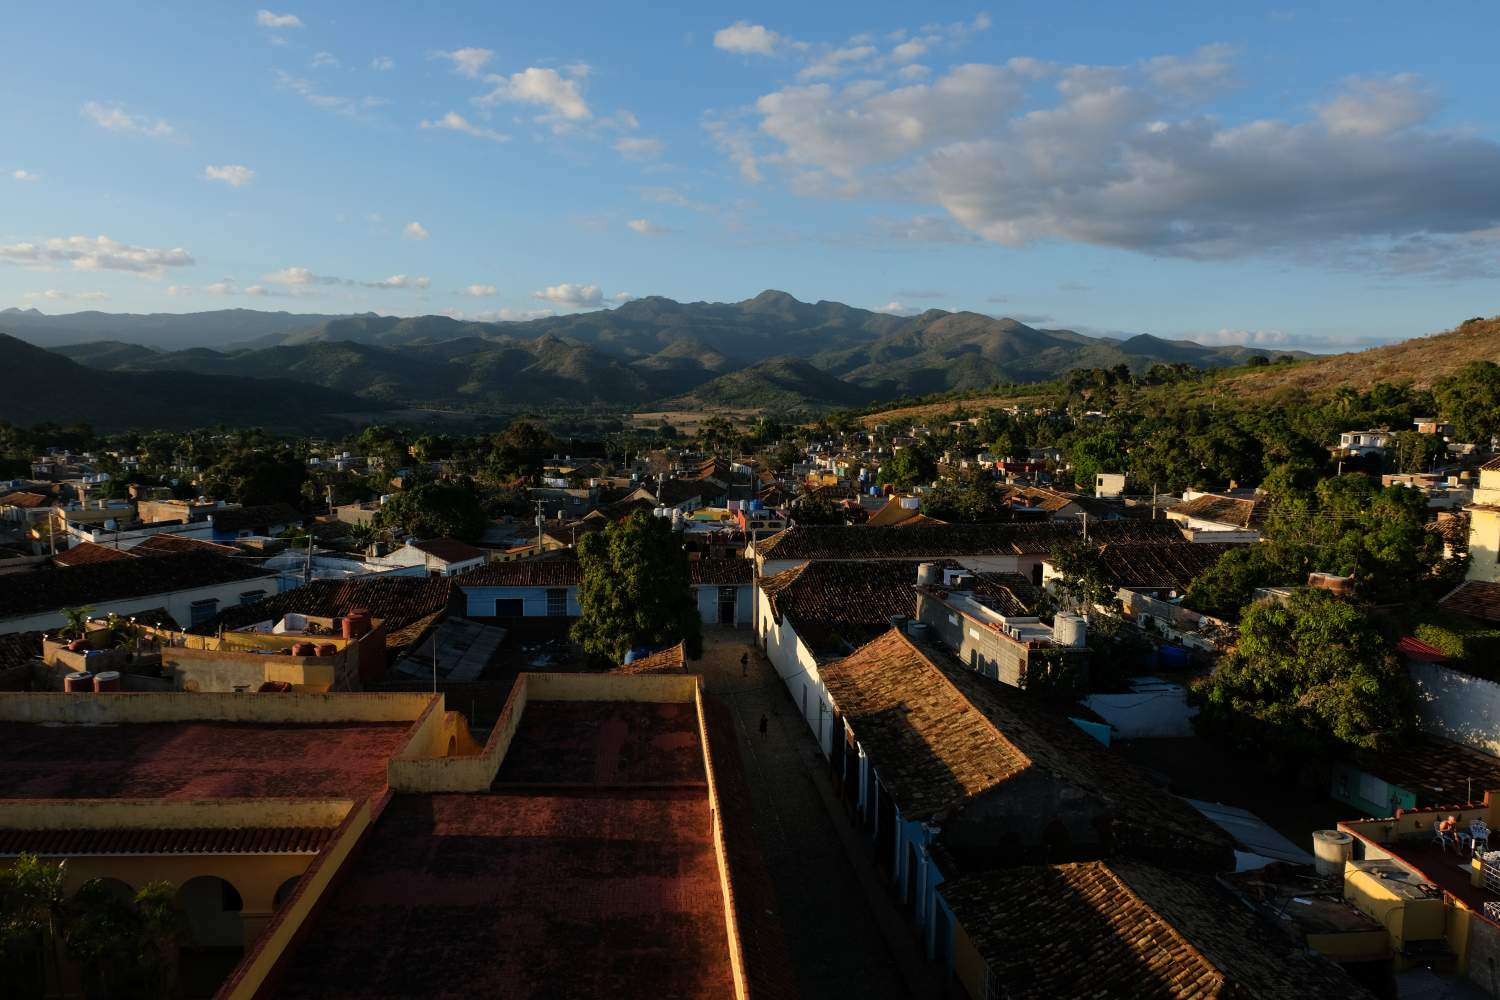 Panorama from the clock tower in Trinidad, Cuba